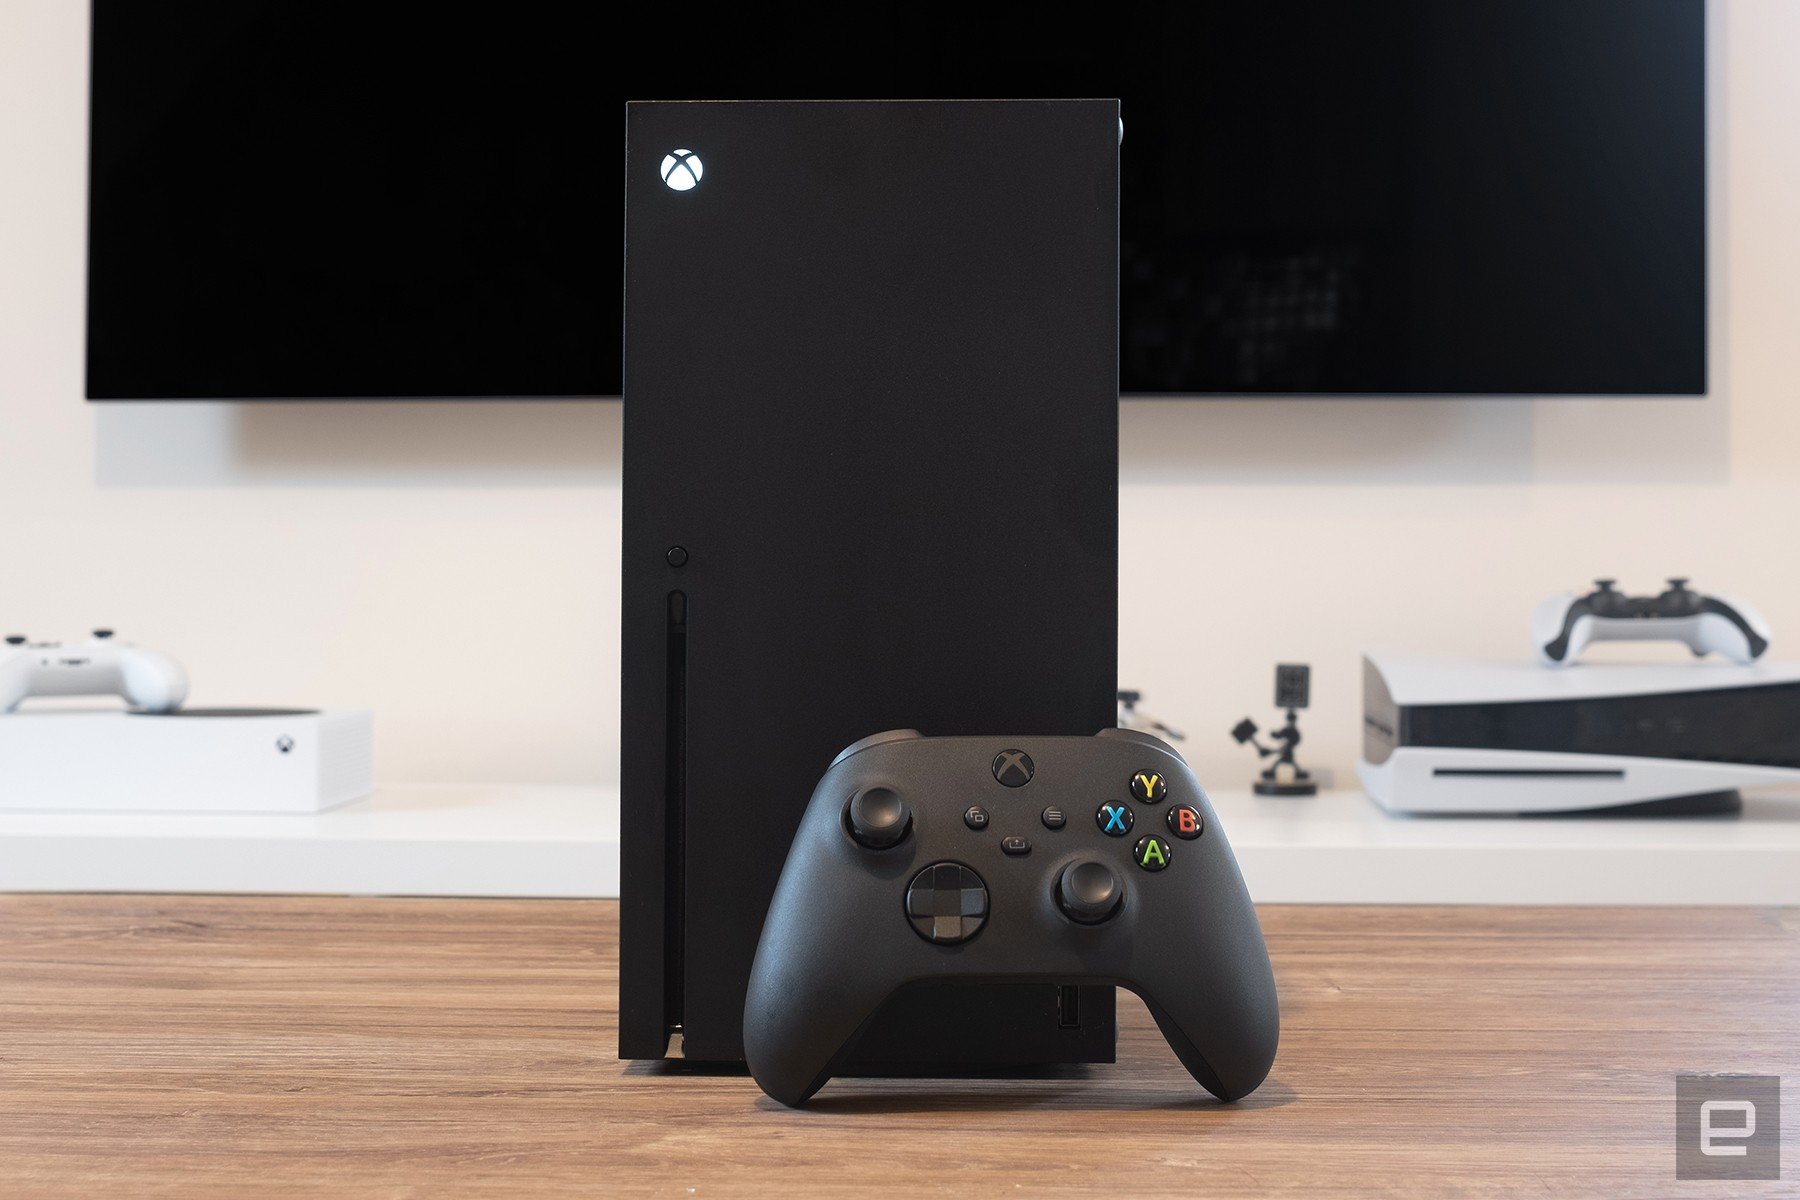 Official Xbox Series X mini fridges are coming, The Gamers Dreams, thegamersdreams.com